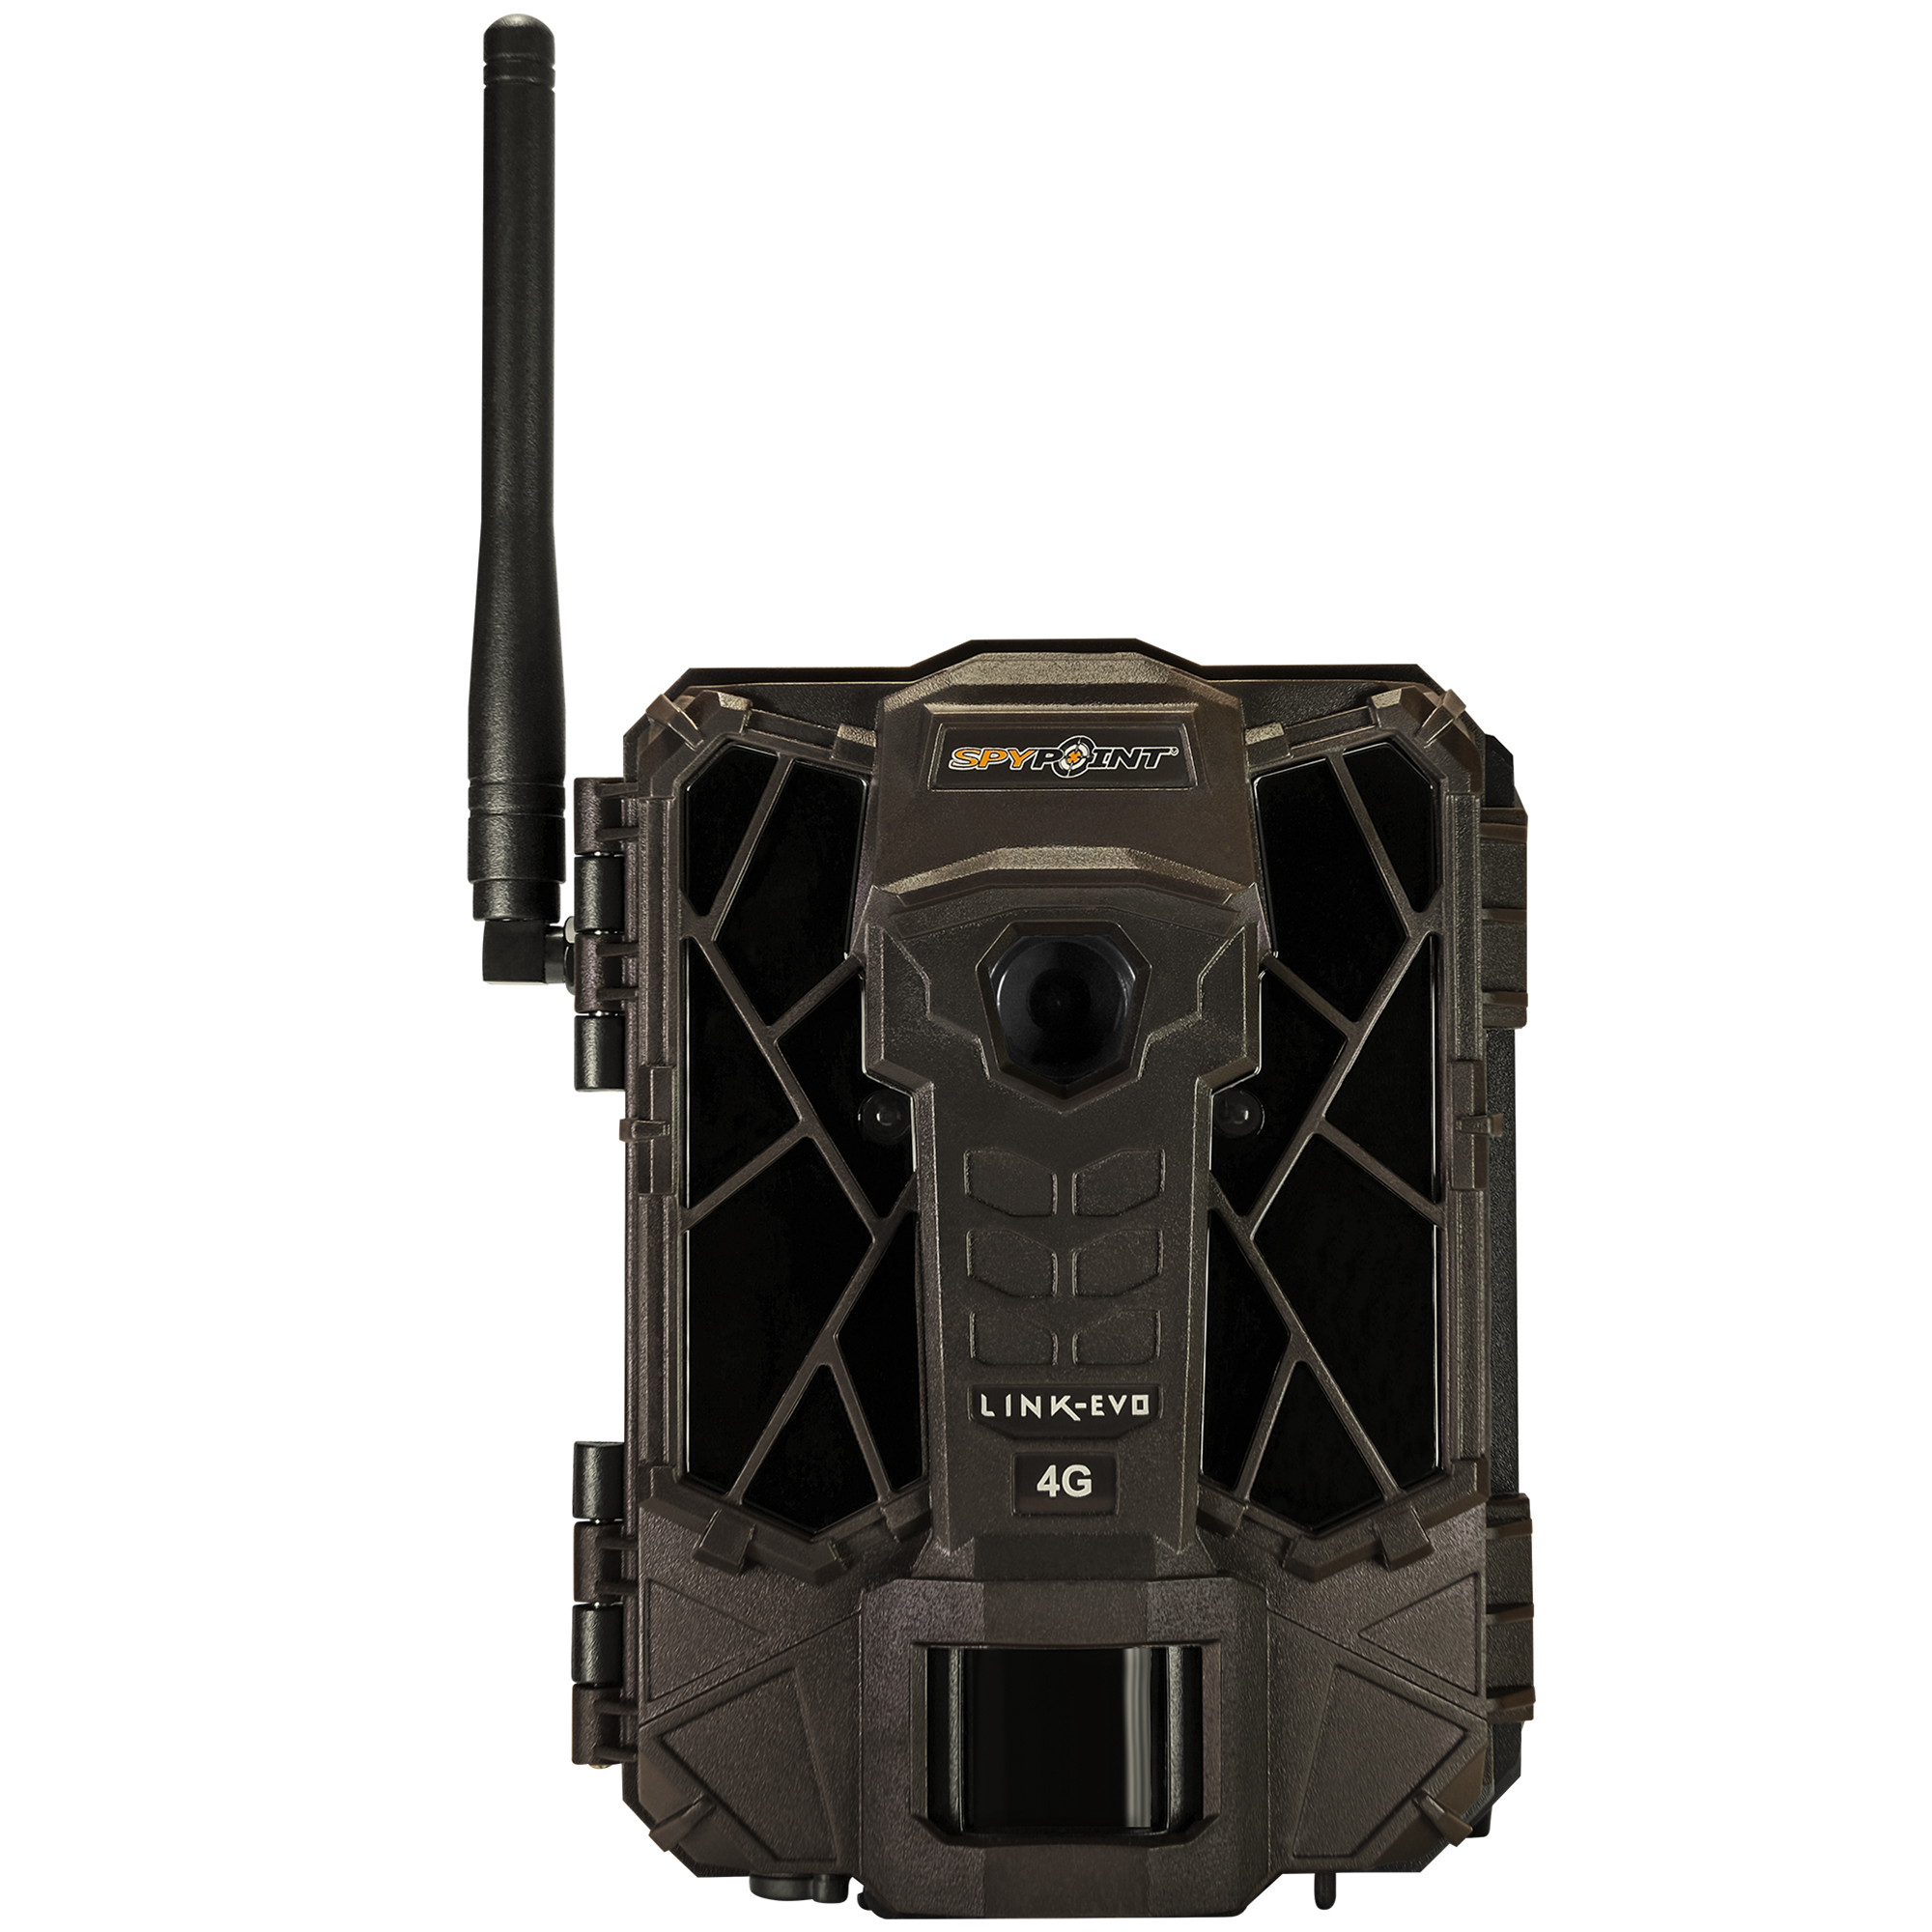 Spypoint LINK-EVO 12MP AT & T Cellular Trail Camera